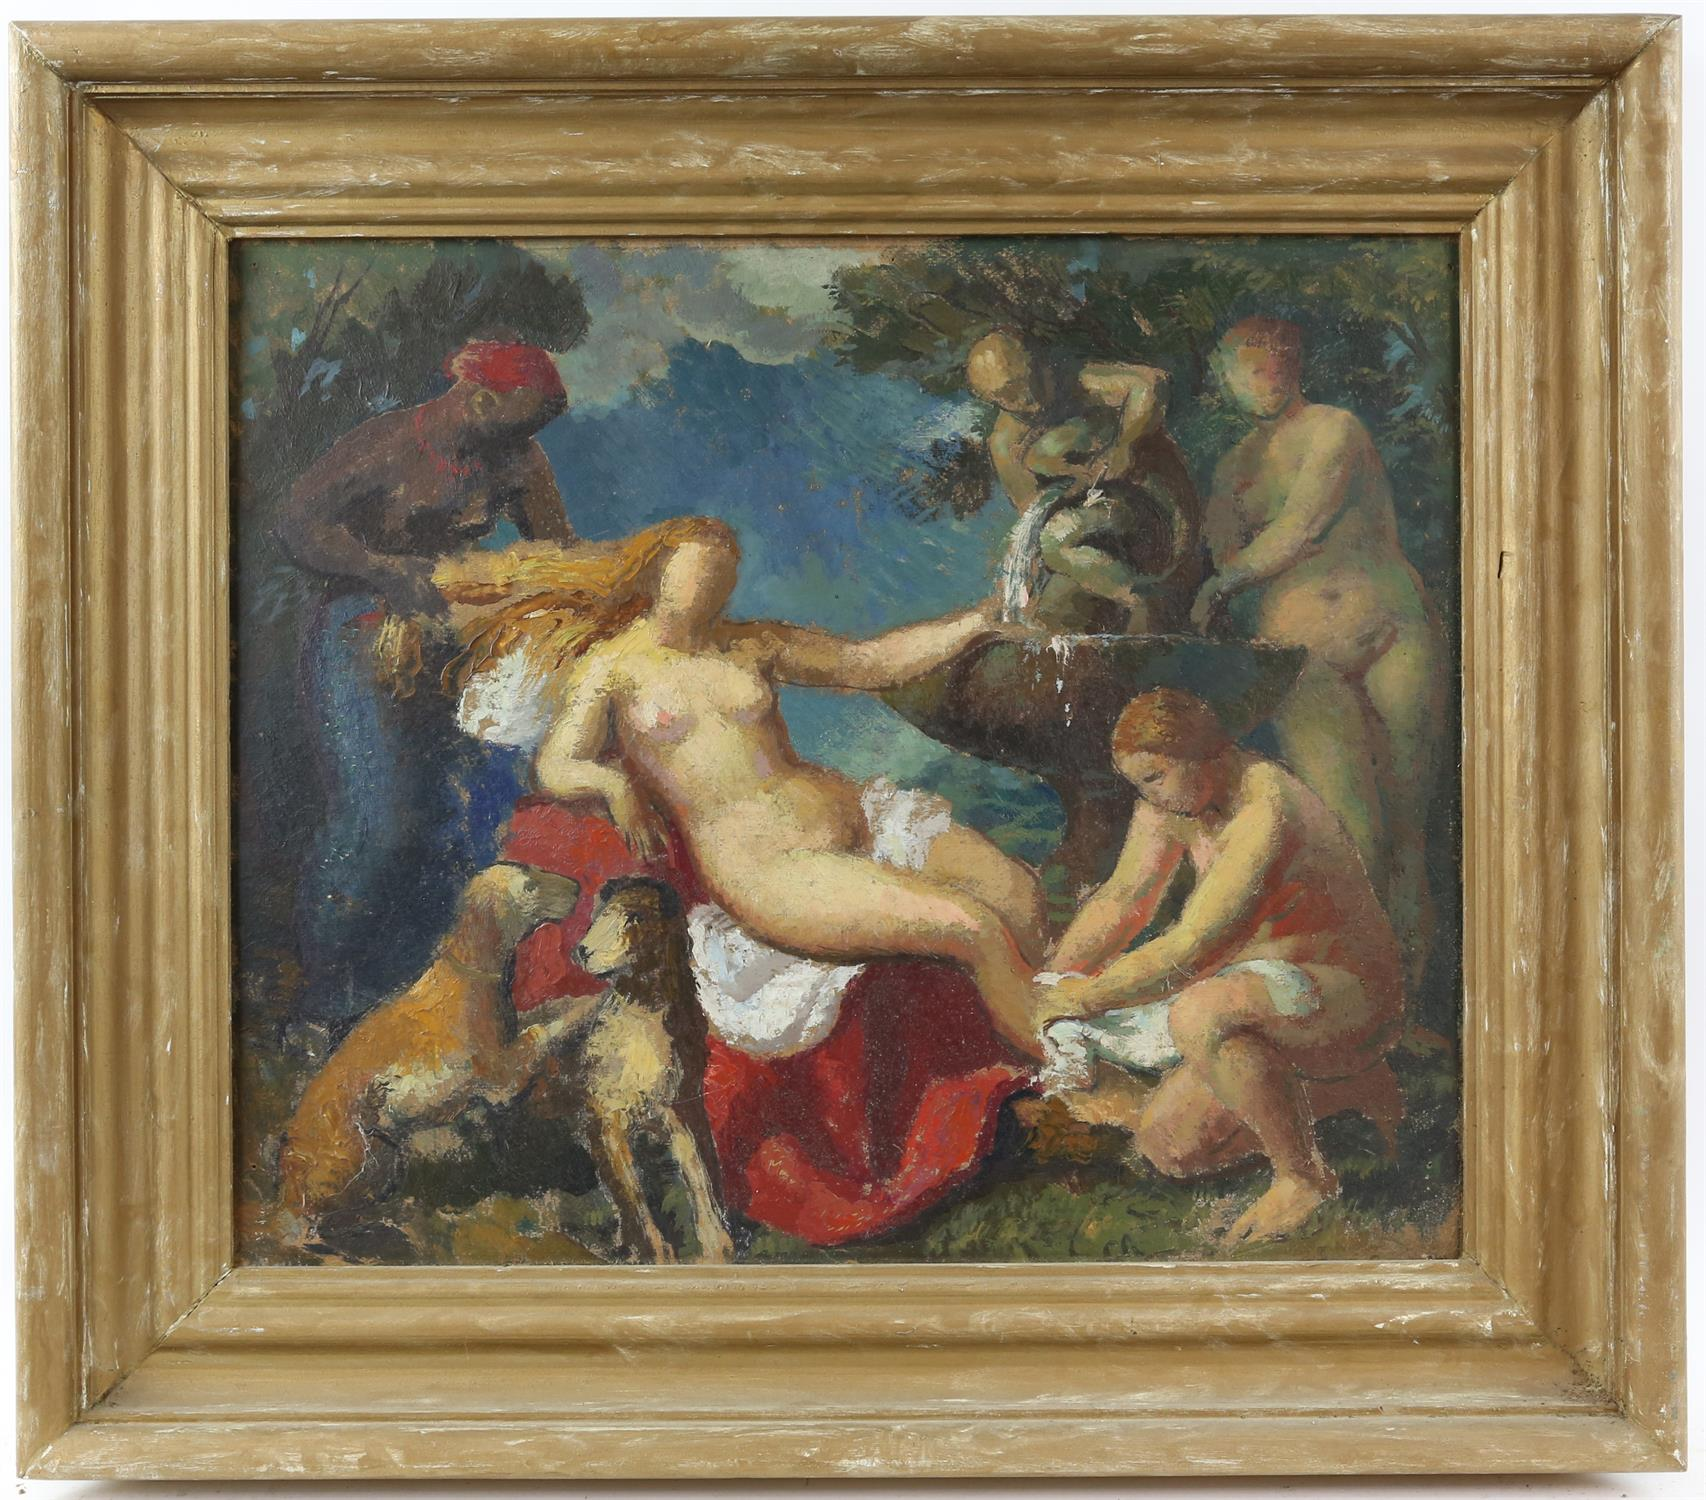 § Lionel Ellis (1903-1988), 'Diana's Bath'. Oil on board, unsigned, titled verso. 49 x 57cm. - Image 2 of 3